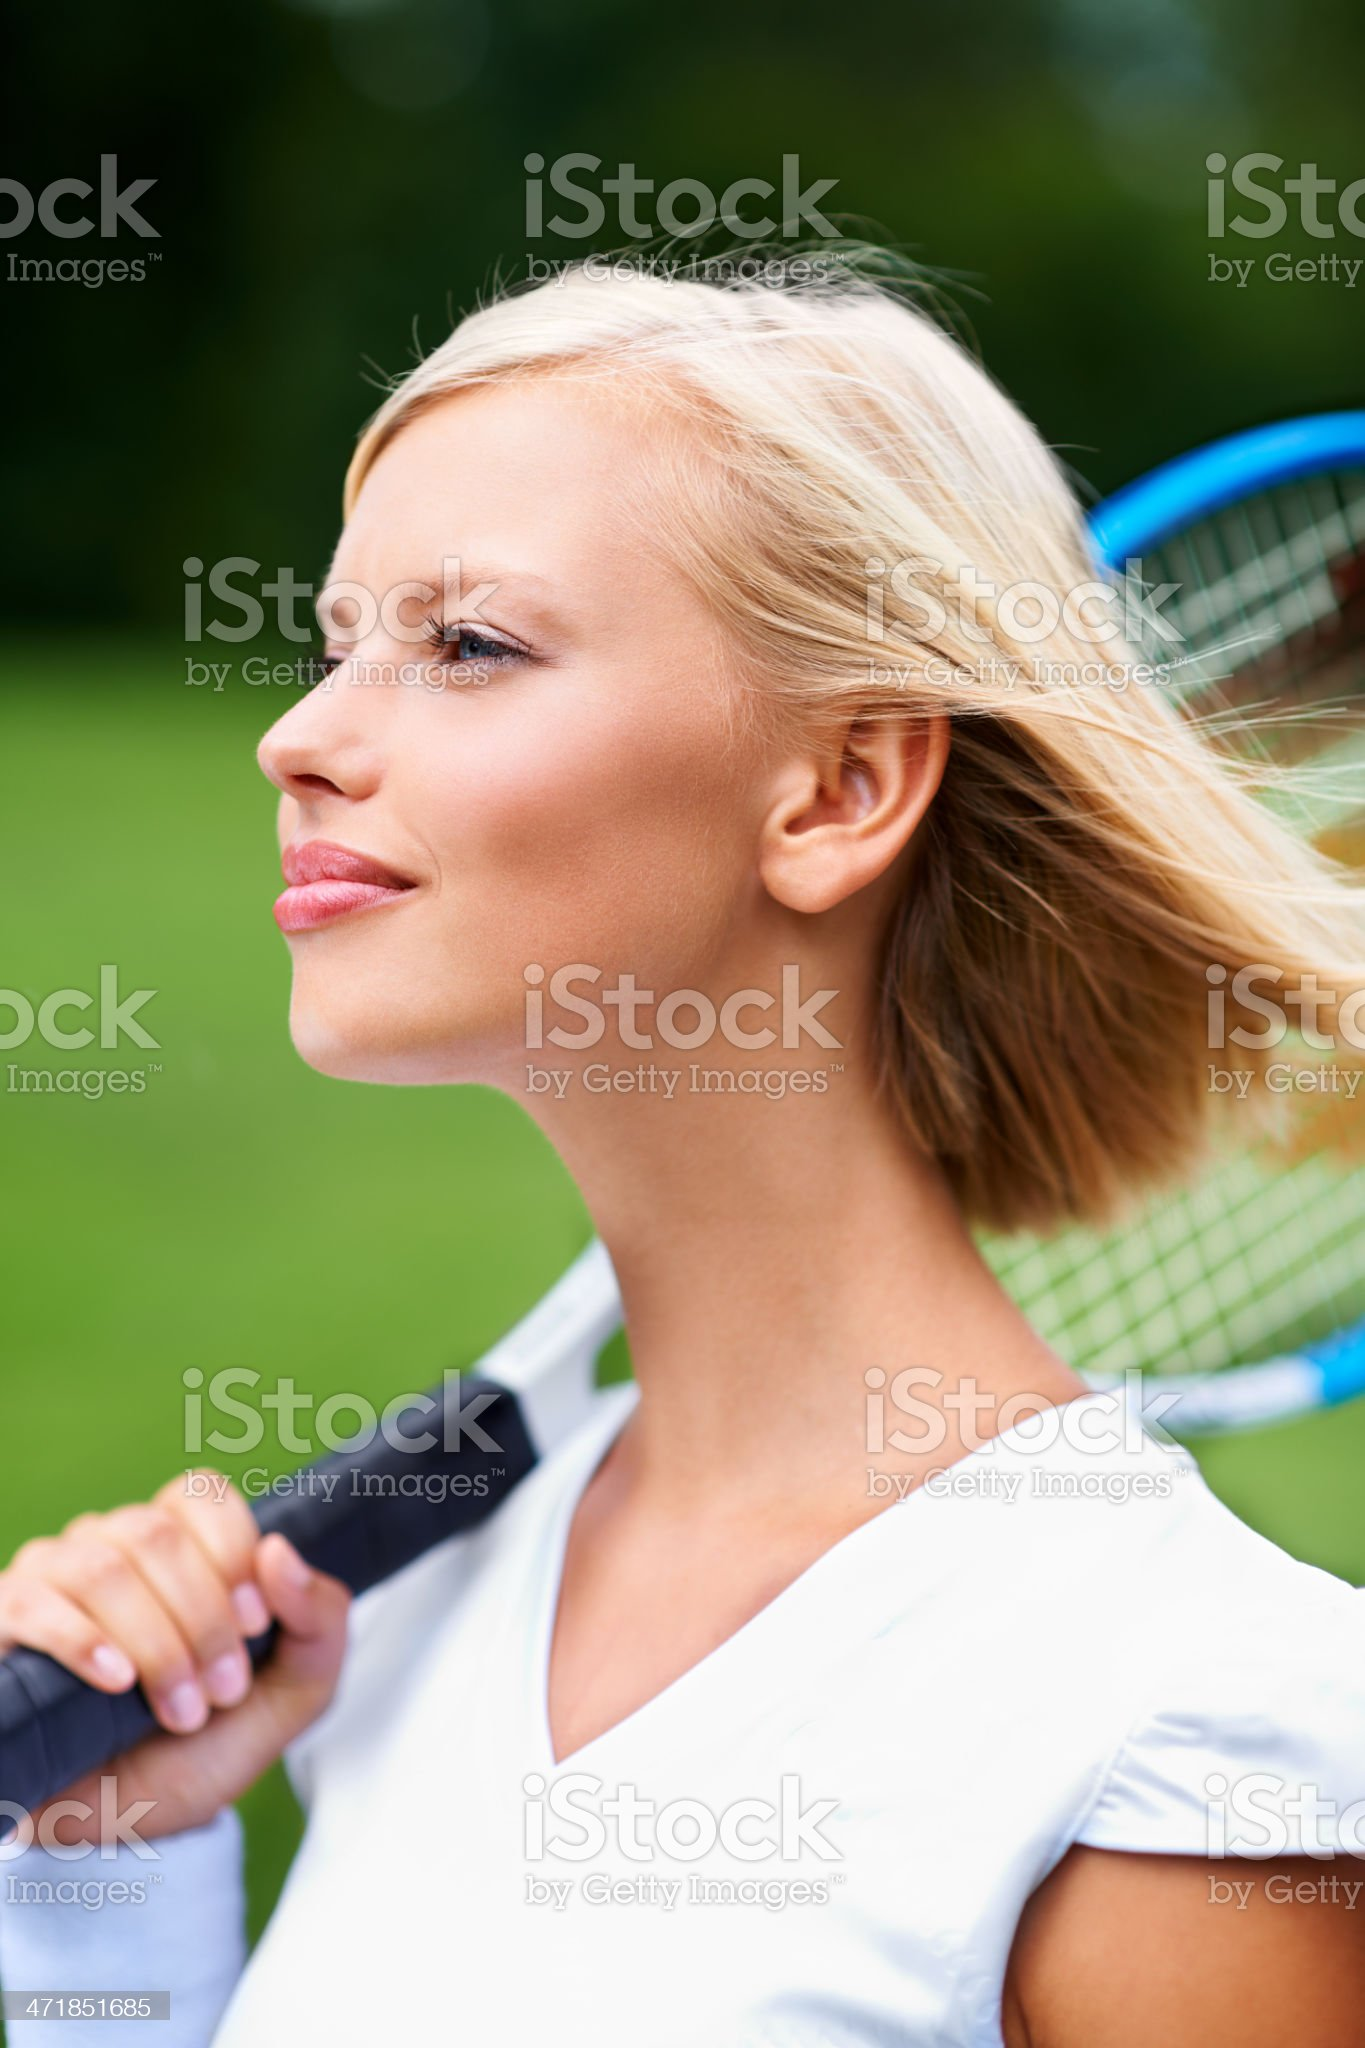 Keeping her eye on the ball royalty-free stock photo